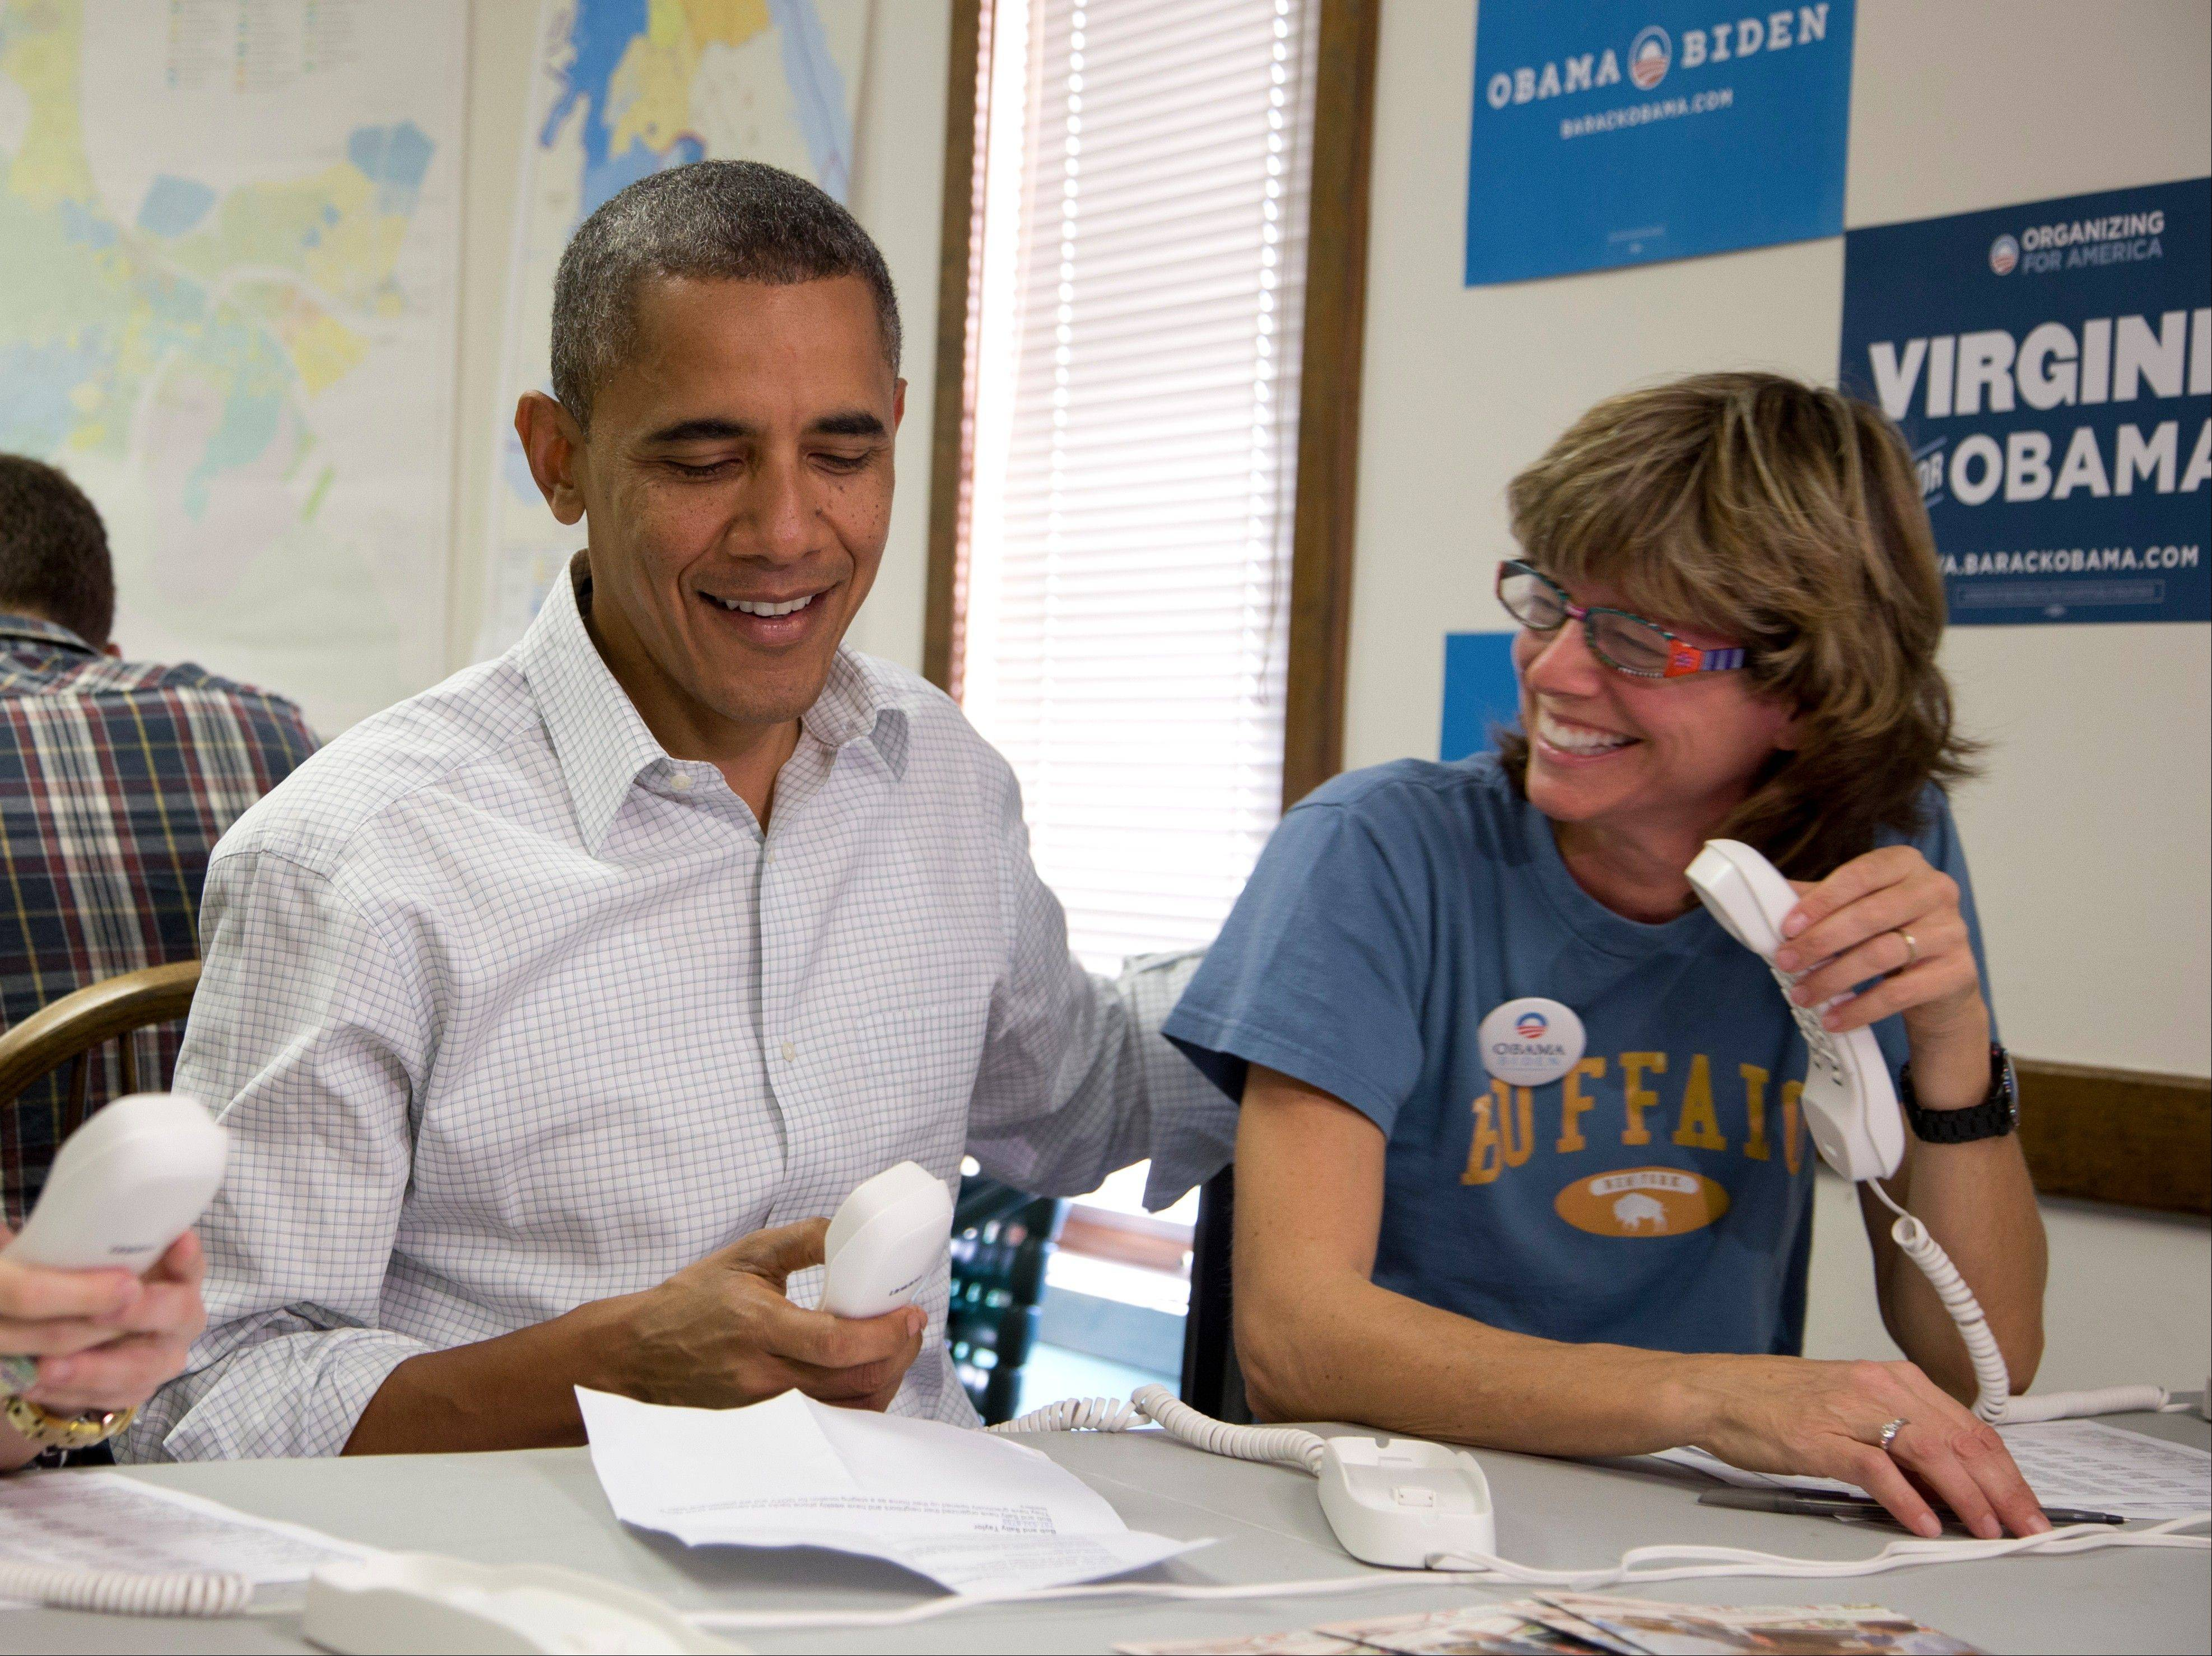 President Barack Obama makes phone calls to volunteers at an Organizing for America field office with Suzanne Stern, right, Sunday in Williamsburg, Va.